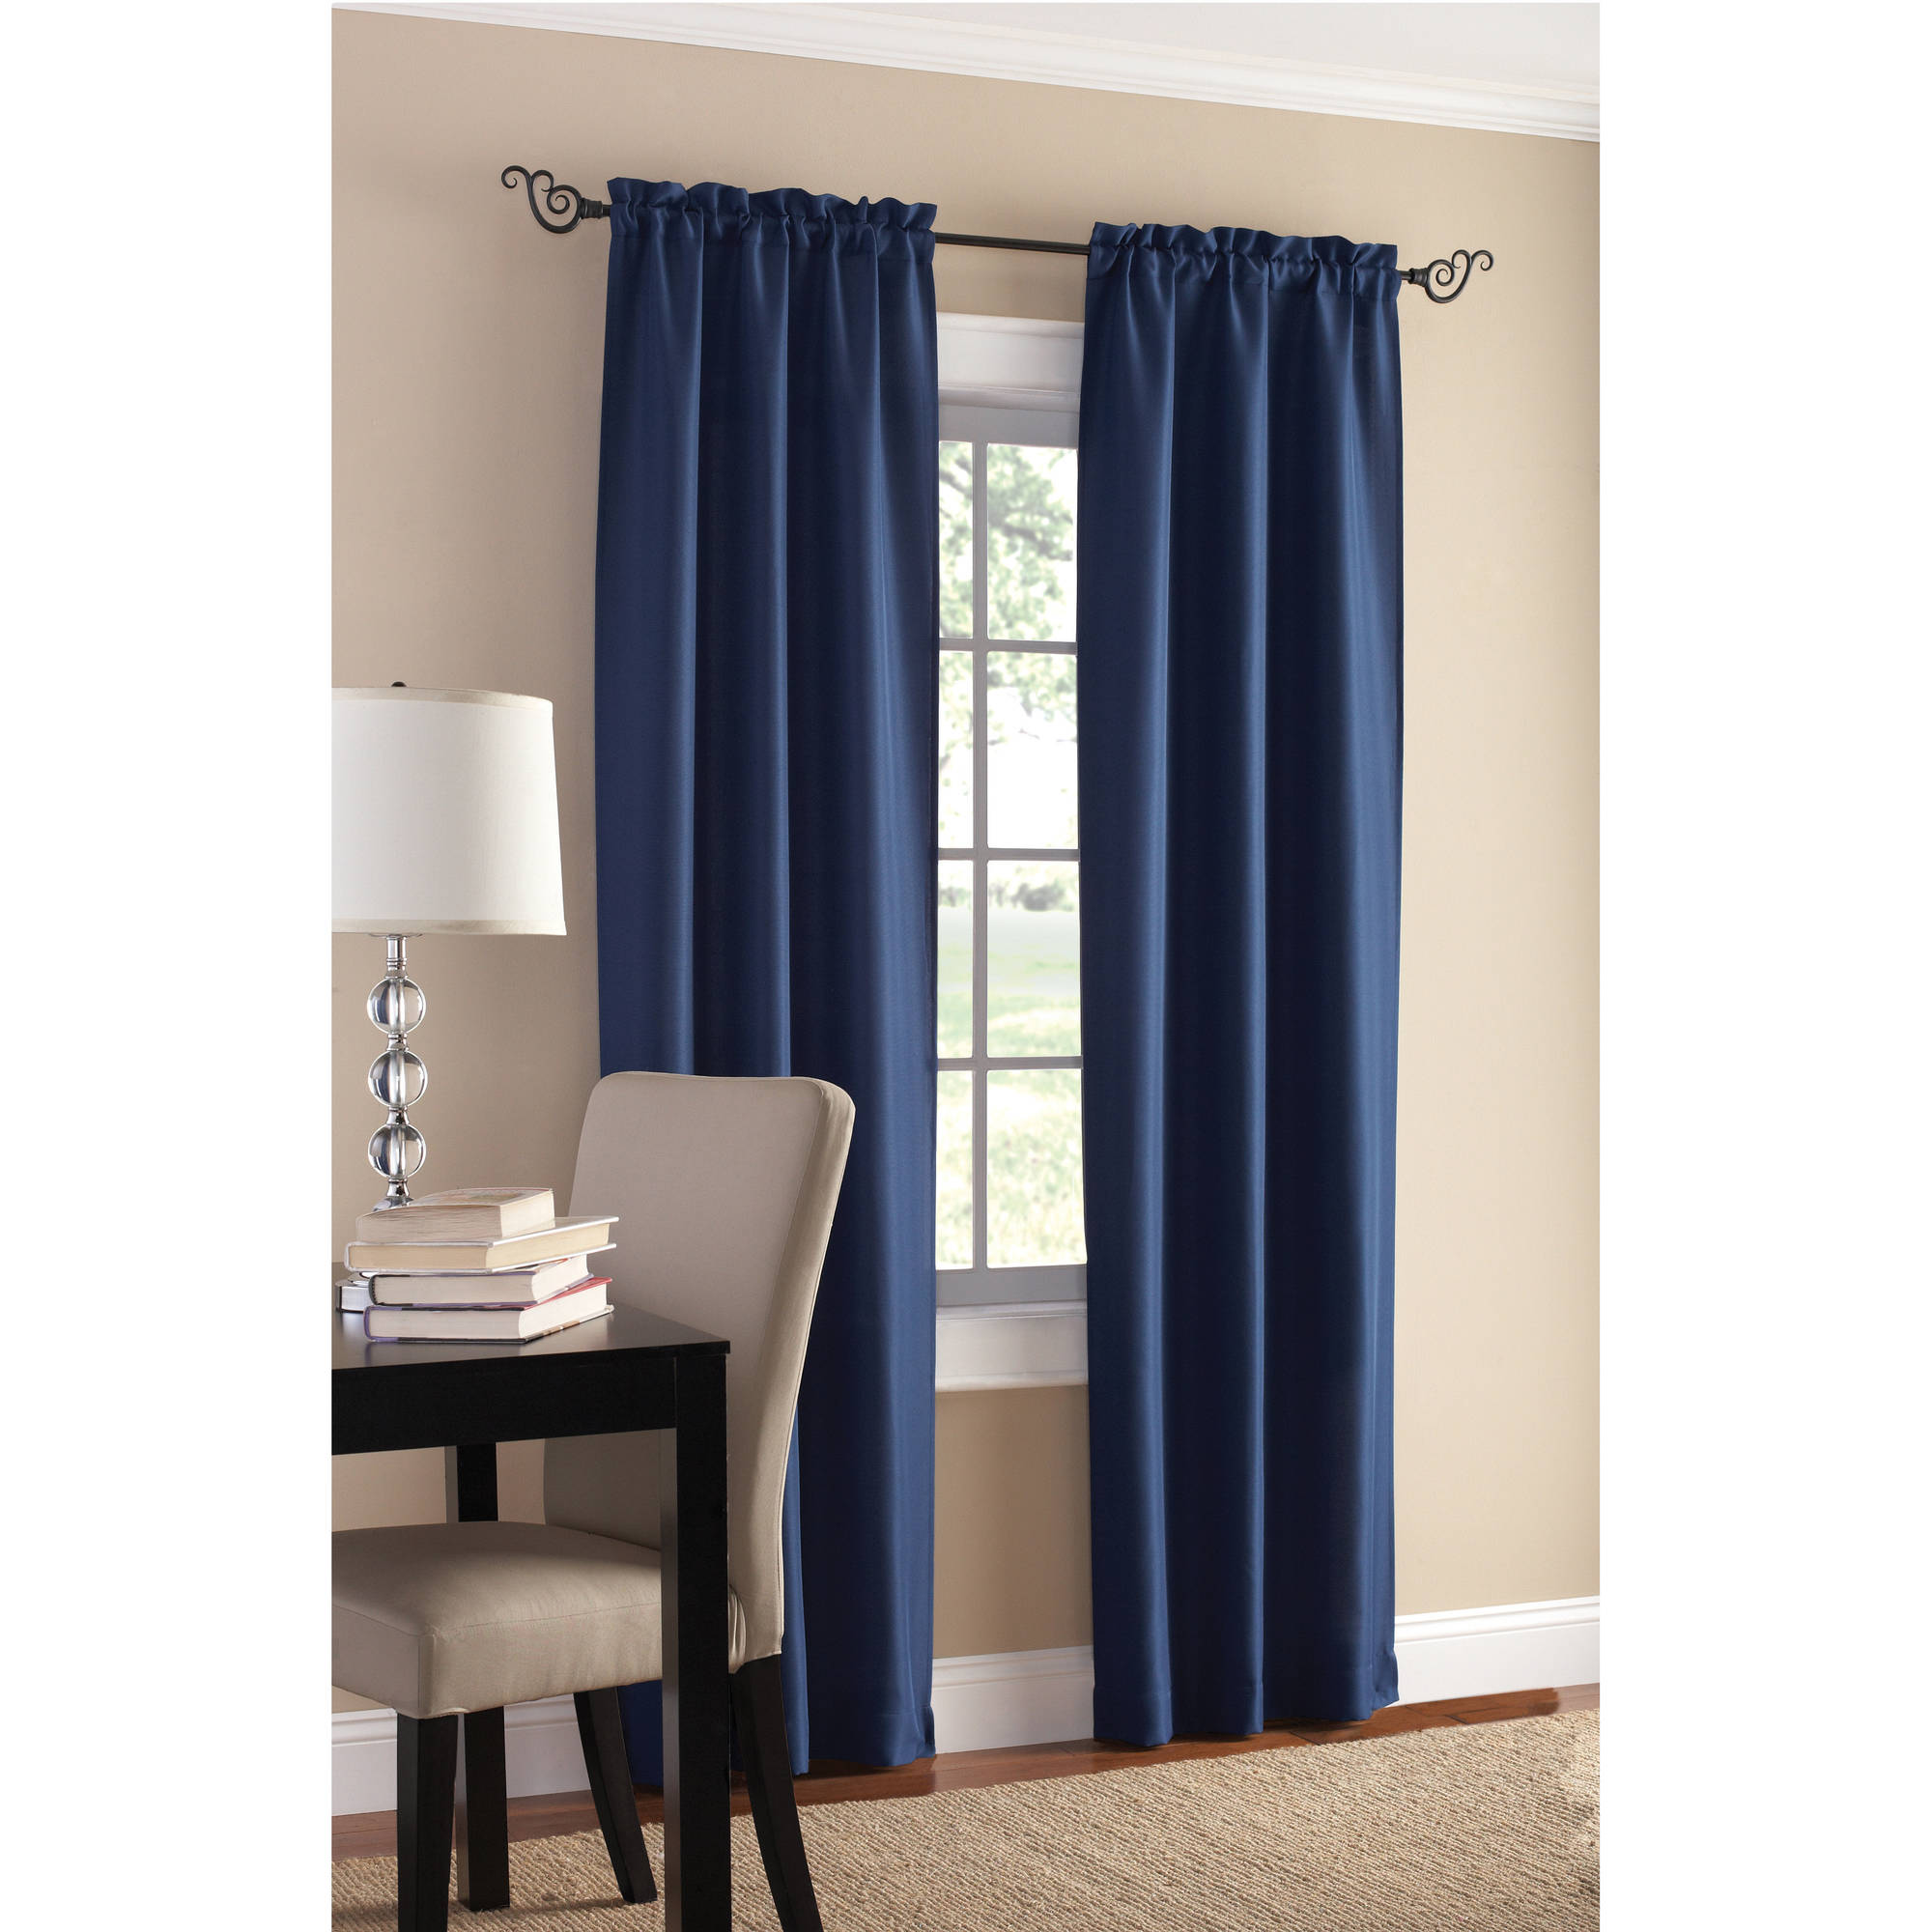 ceiling full long the and drapes living office single curtain in bedroom of buy walmart curtains for small window room size windows